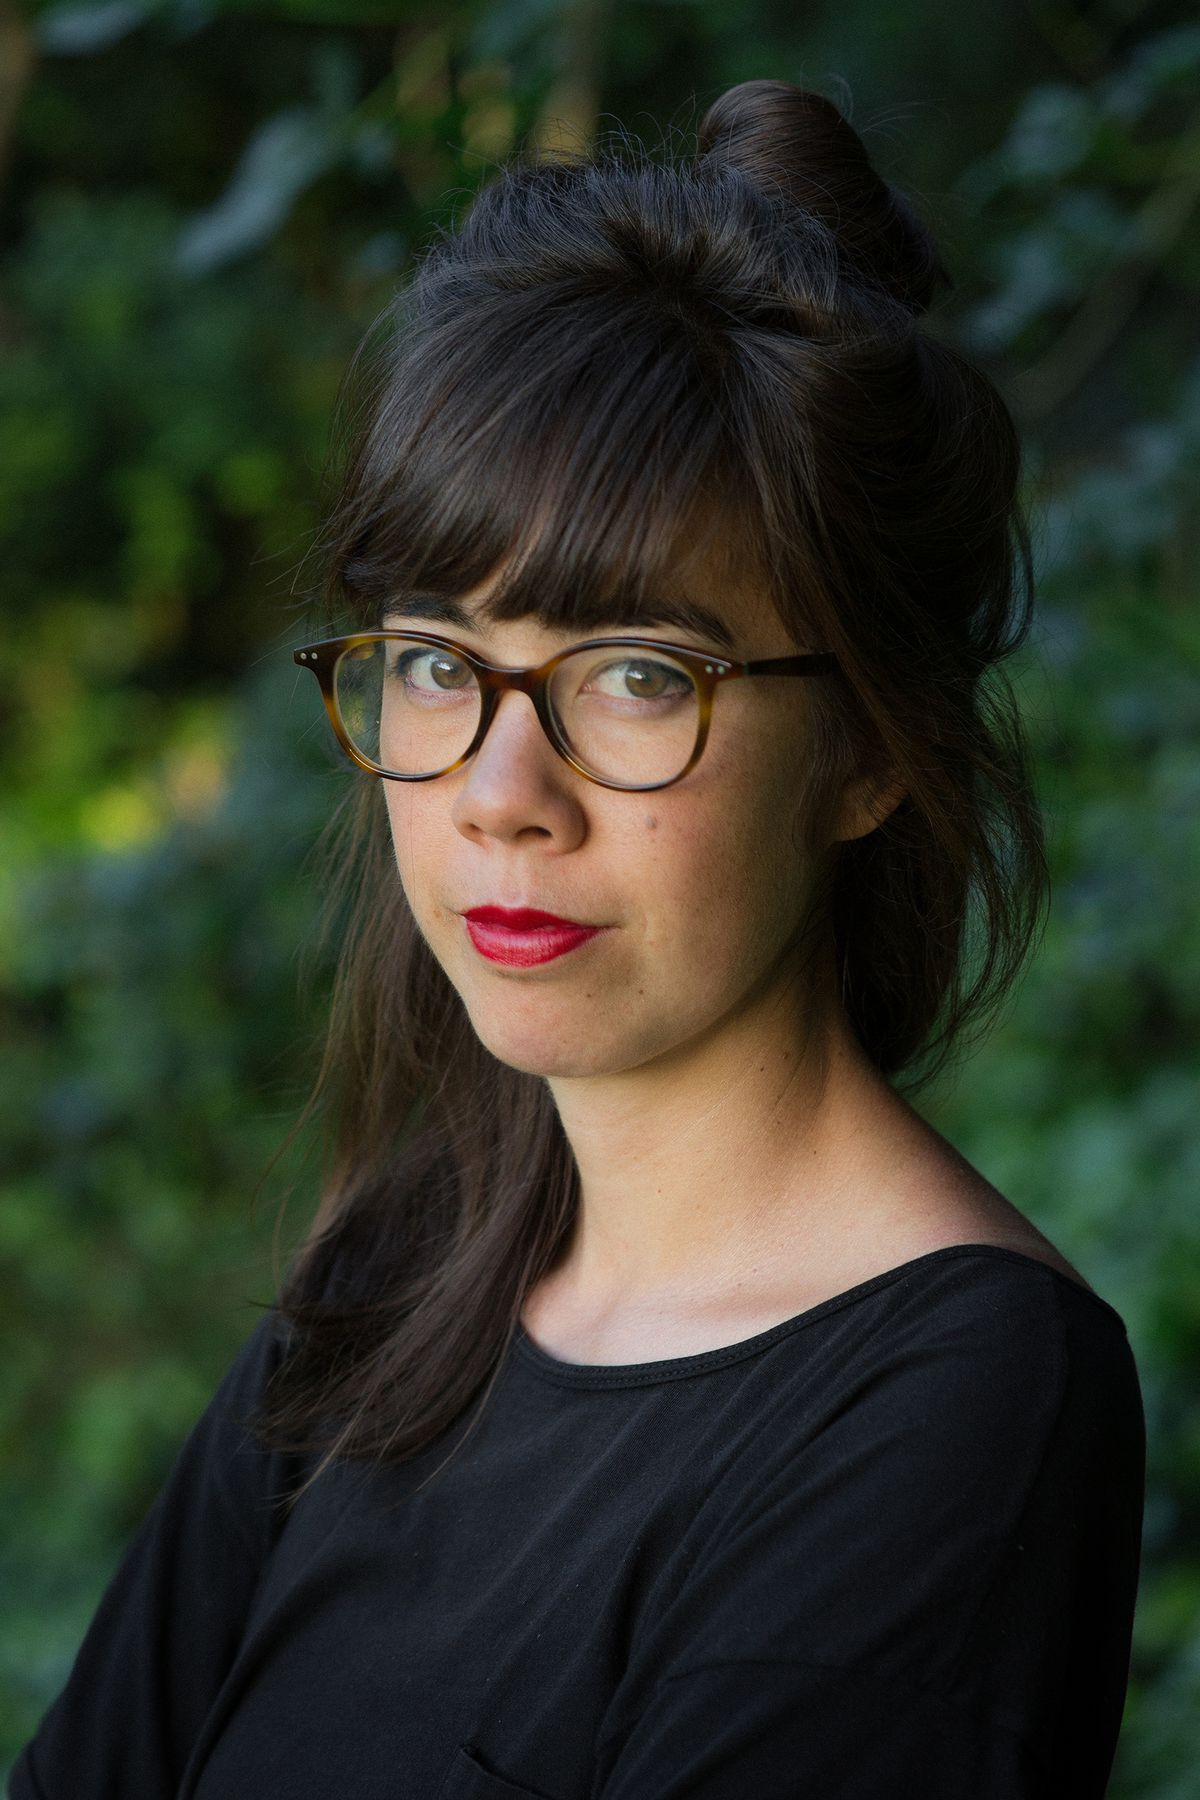 A photo of author Jenny Odell, who has brown hair and bangs and wears glasses while looking straight into the camera and not smiling.